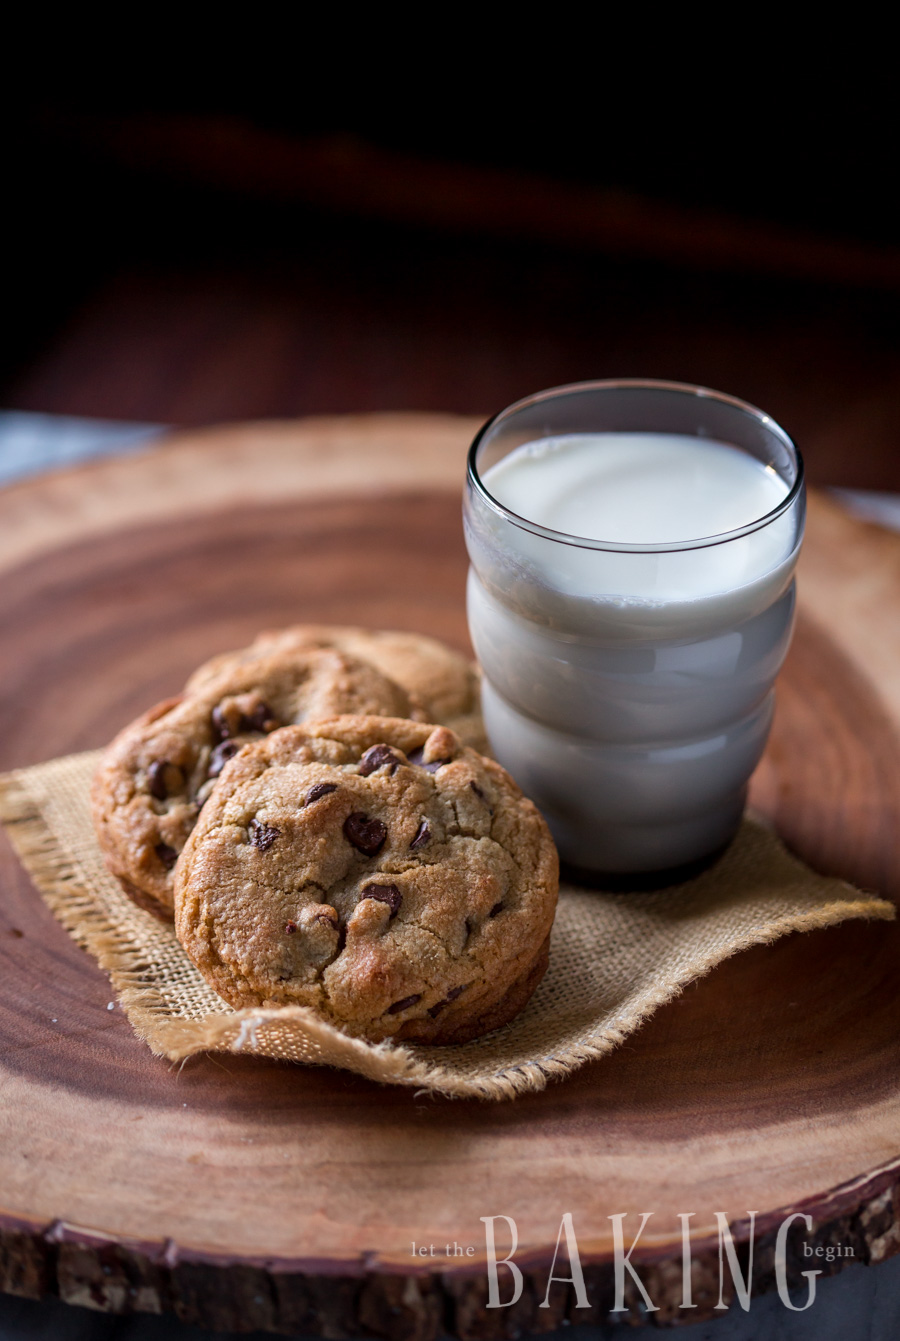 Three chewy chocolate chip cookies on burlap with a glass of milk.